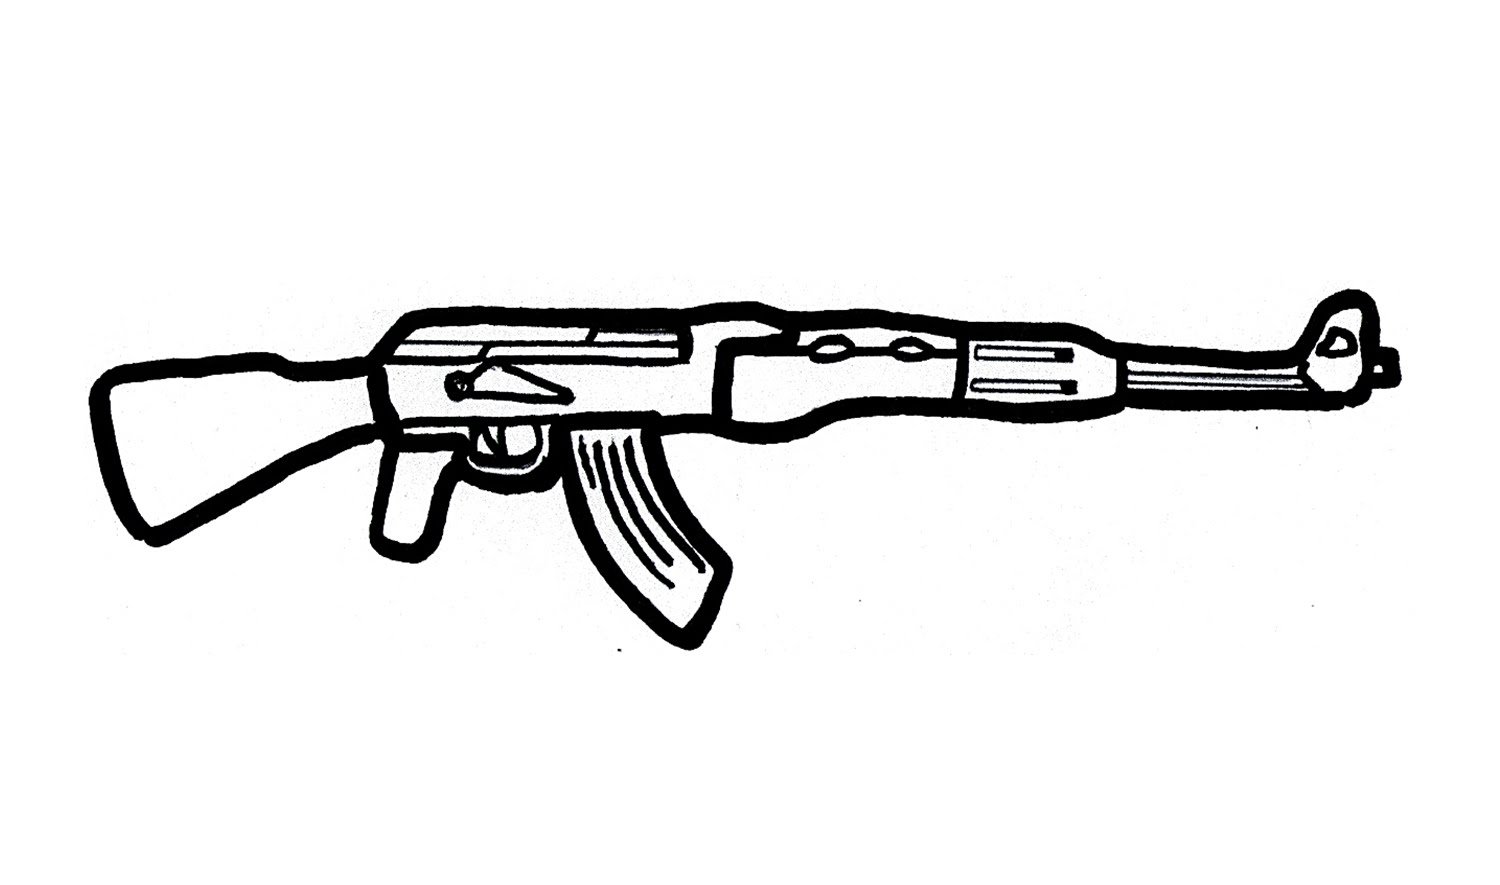 Drawn rifle Rifle) AK 47 AK an